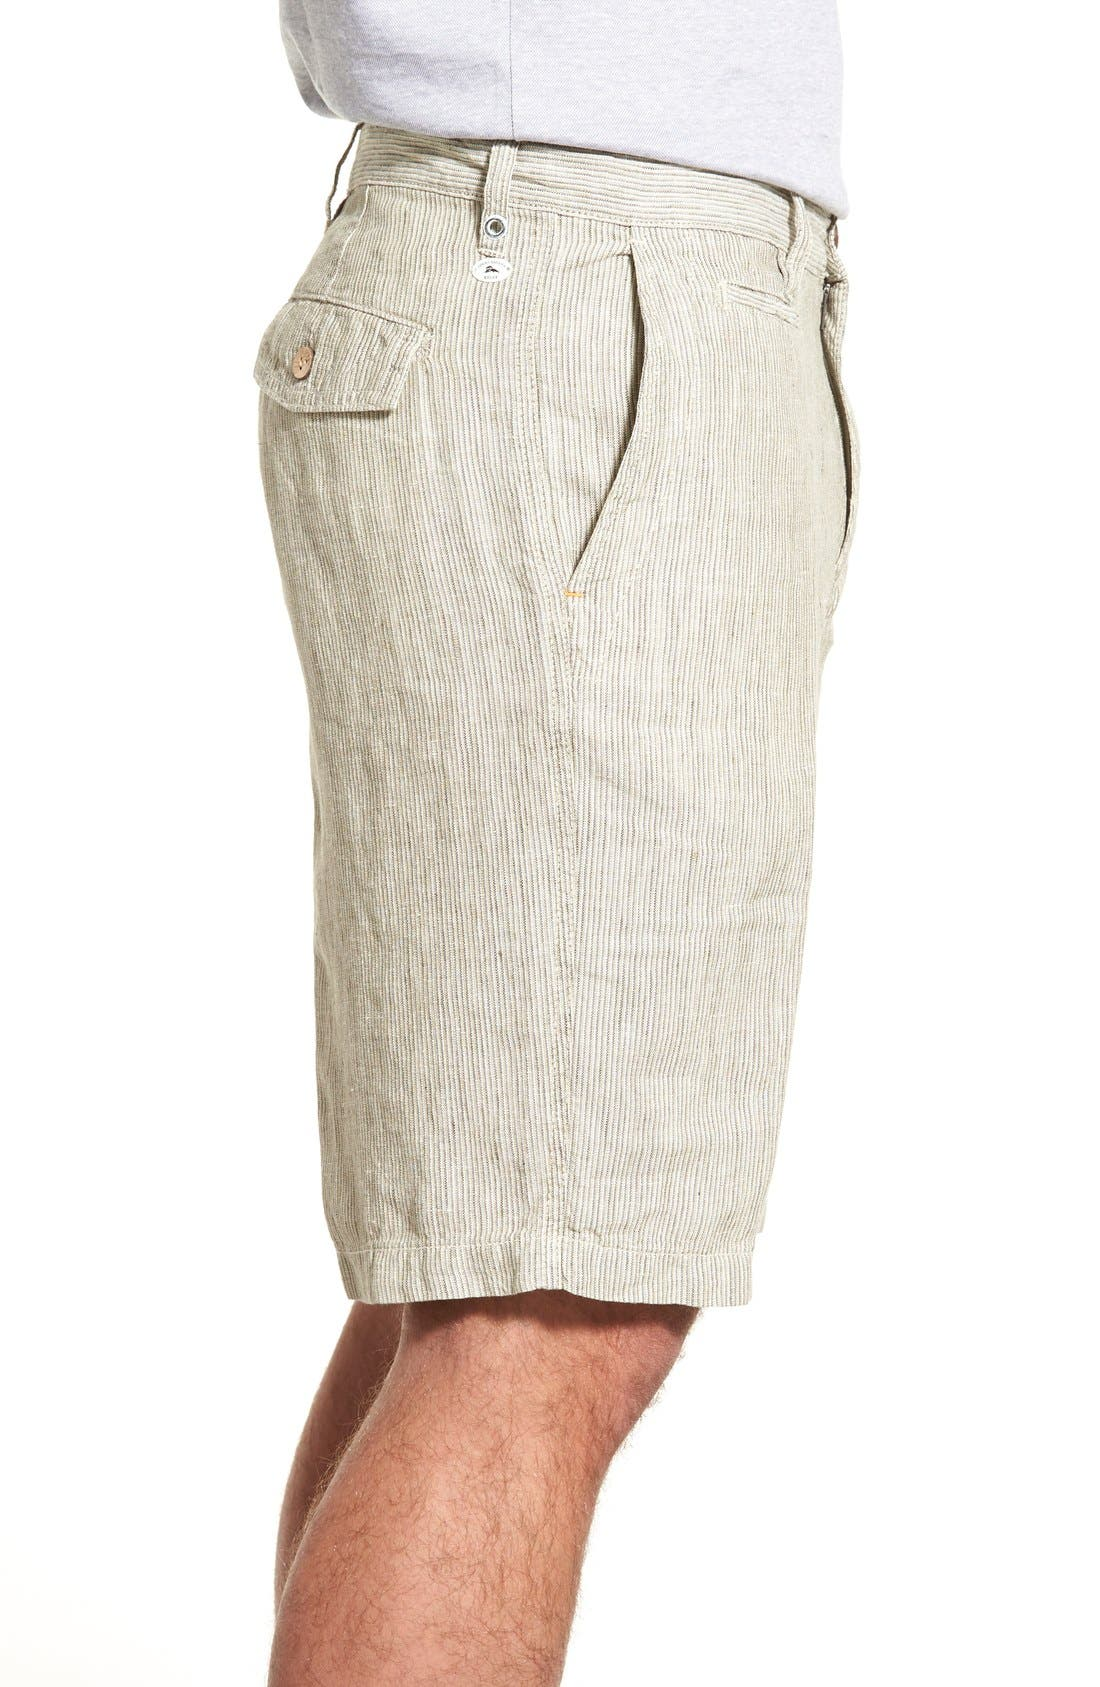 Alternate Image 3  - Tommy Bahama 'Line of the Times' Relaxed Fit Striped Linen Shorts